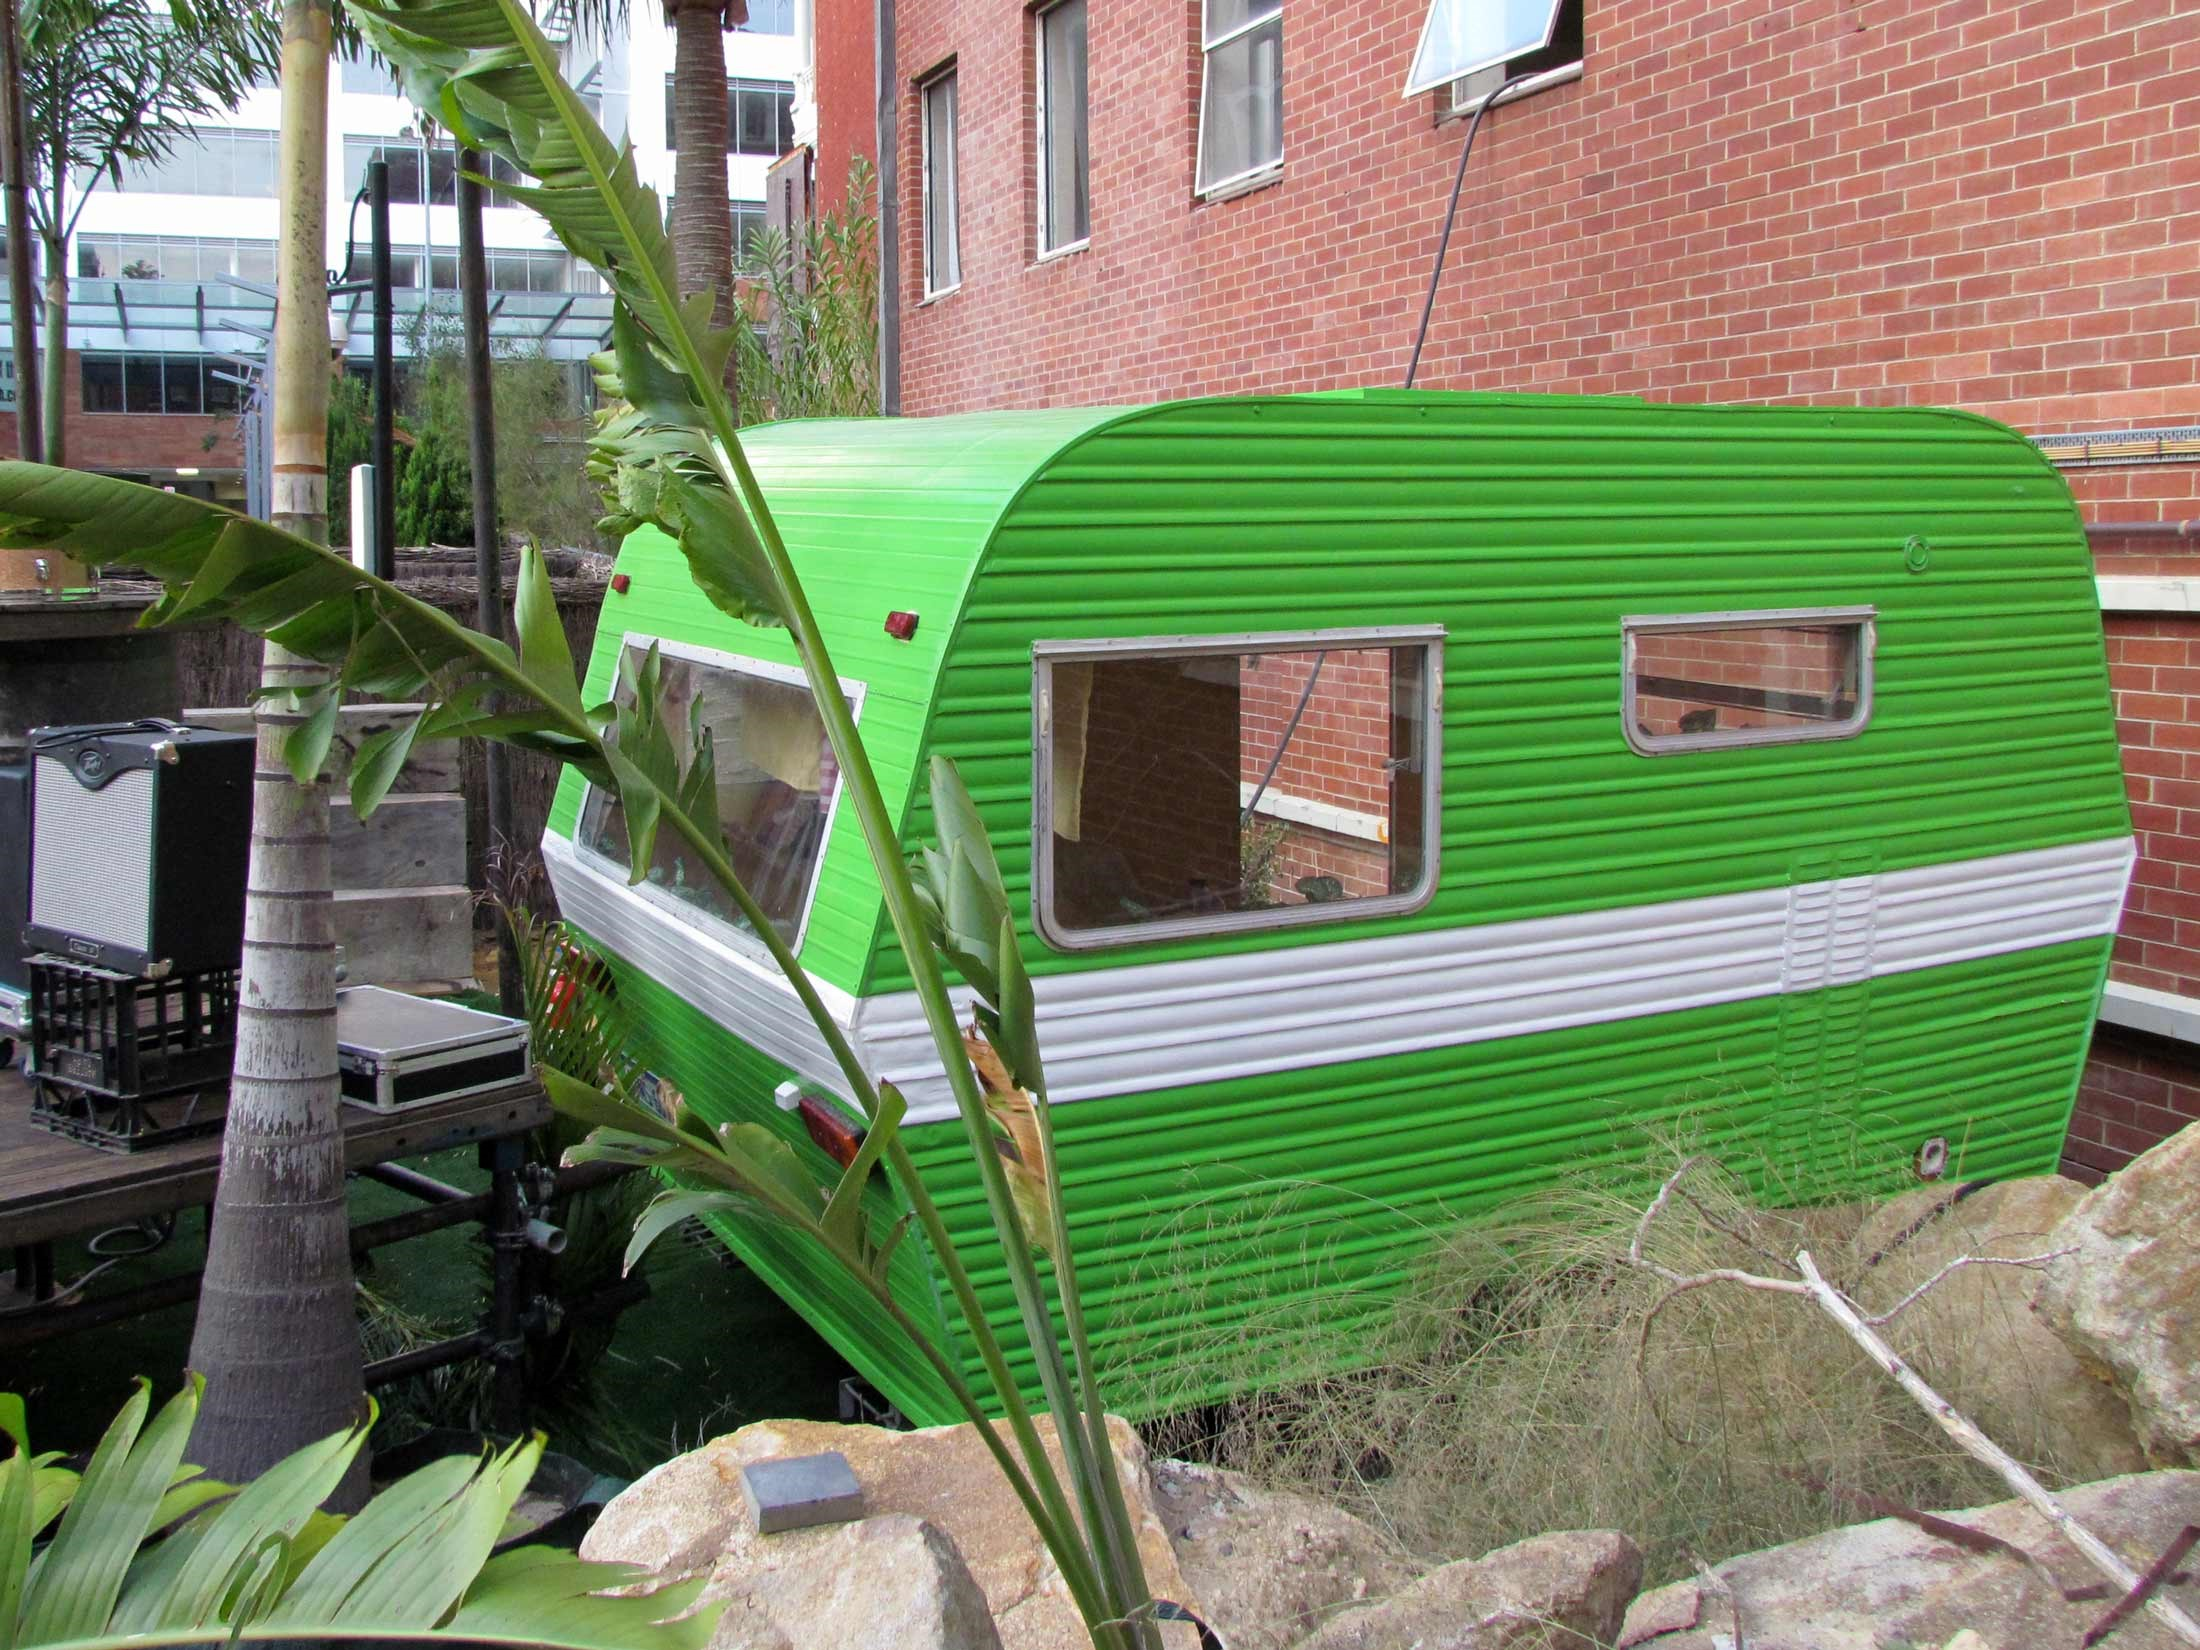 BLOG: 101 USES FOR AN OLD CARAVAN